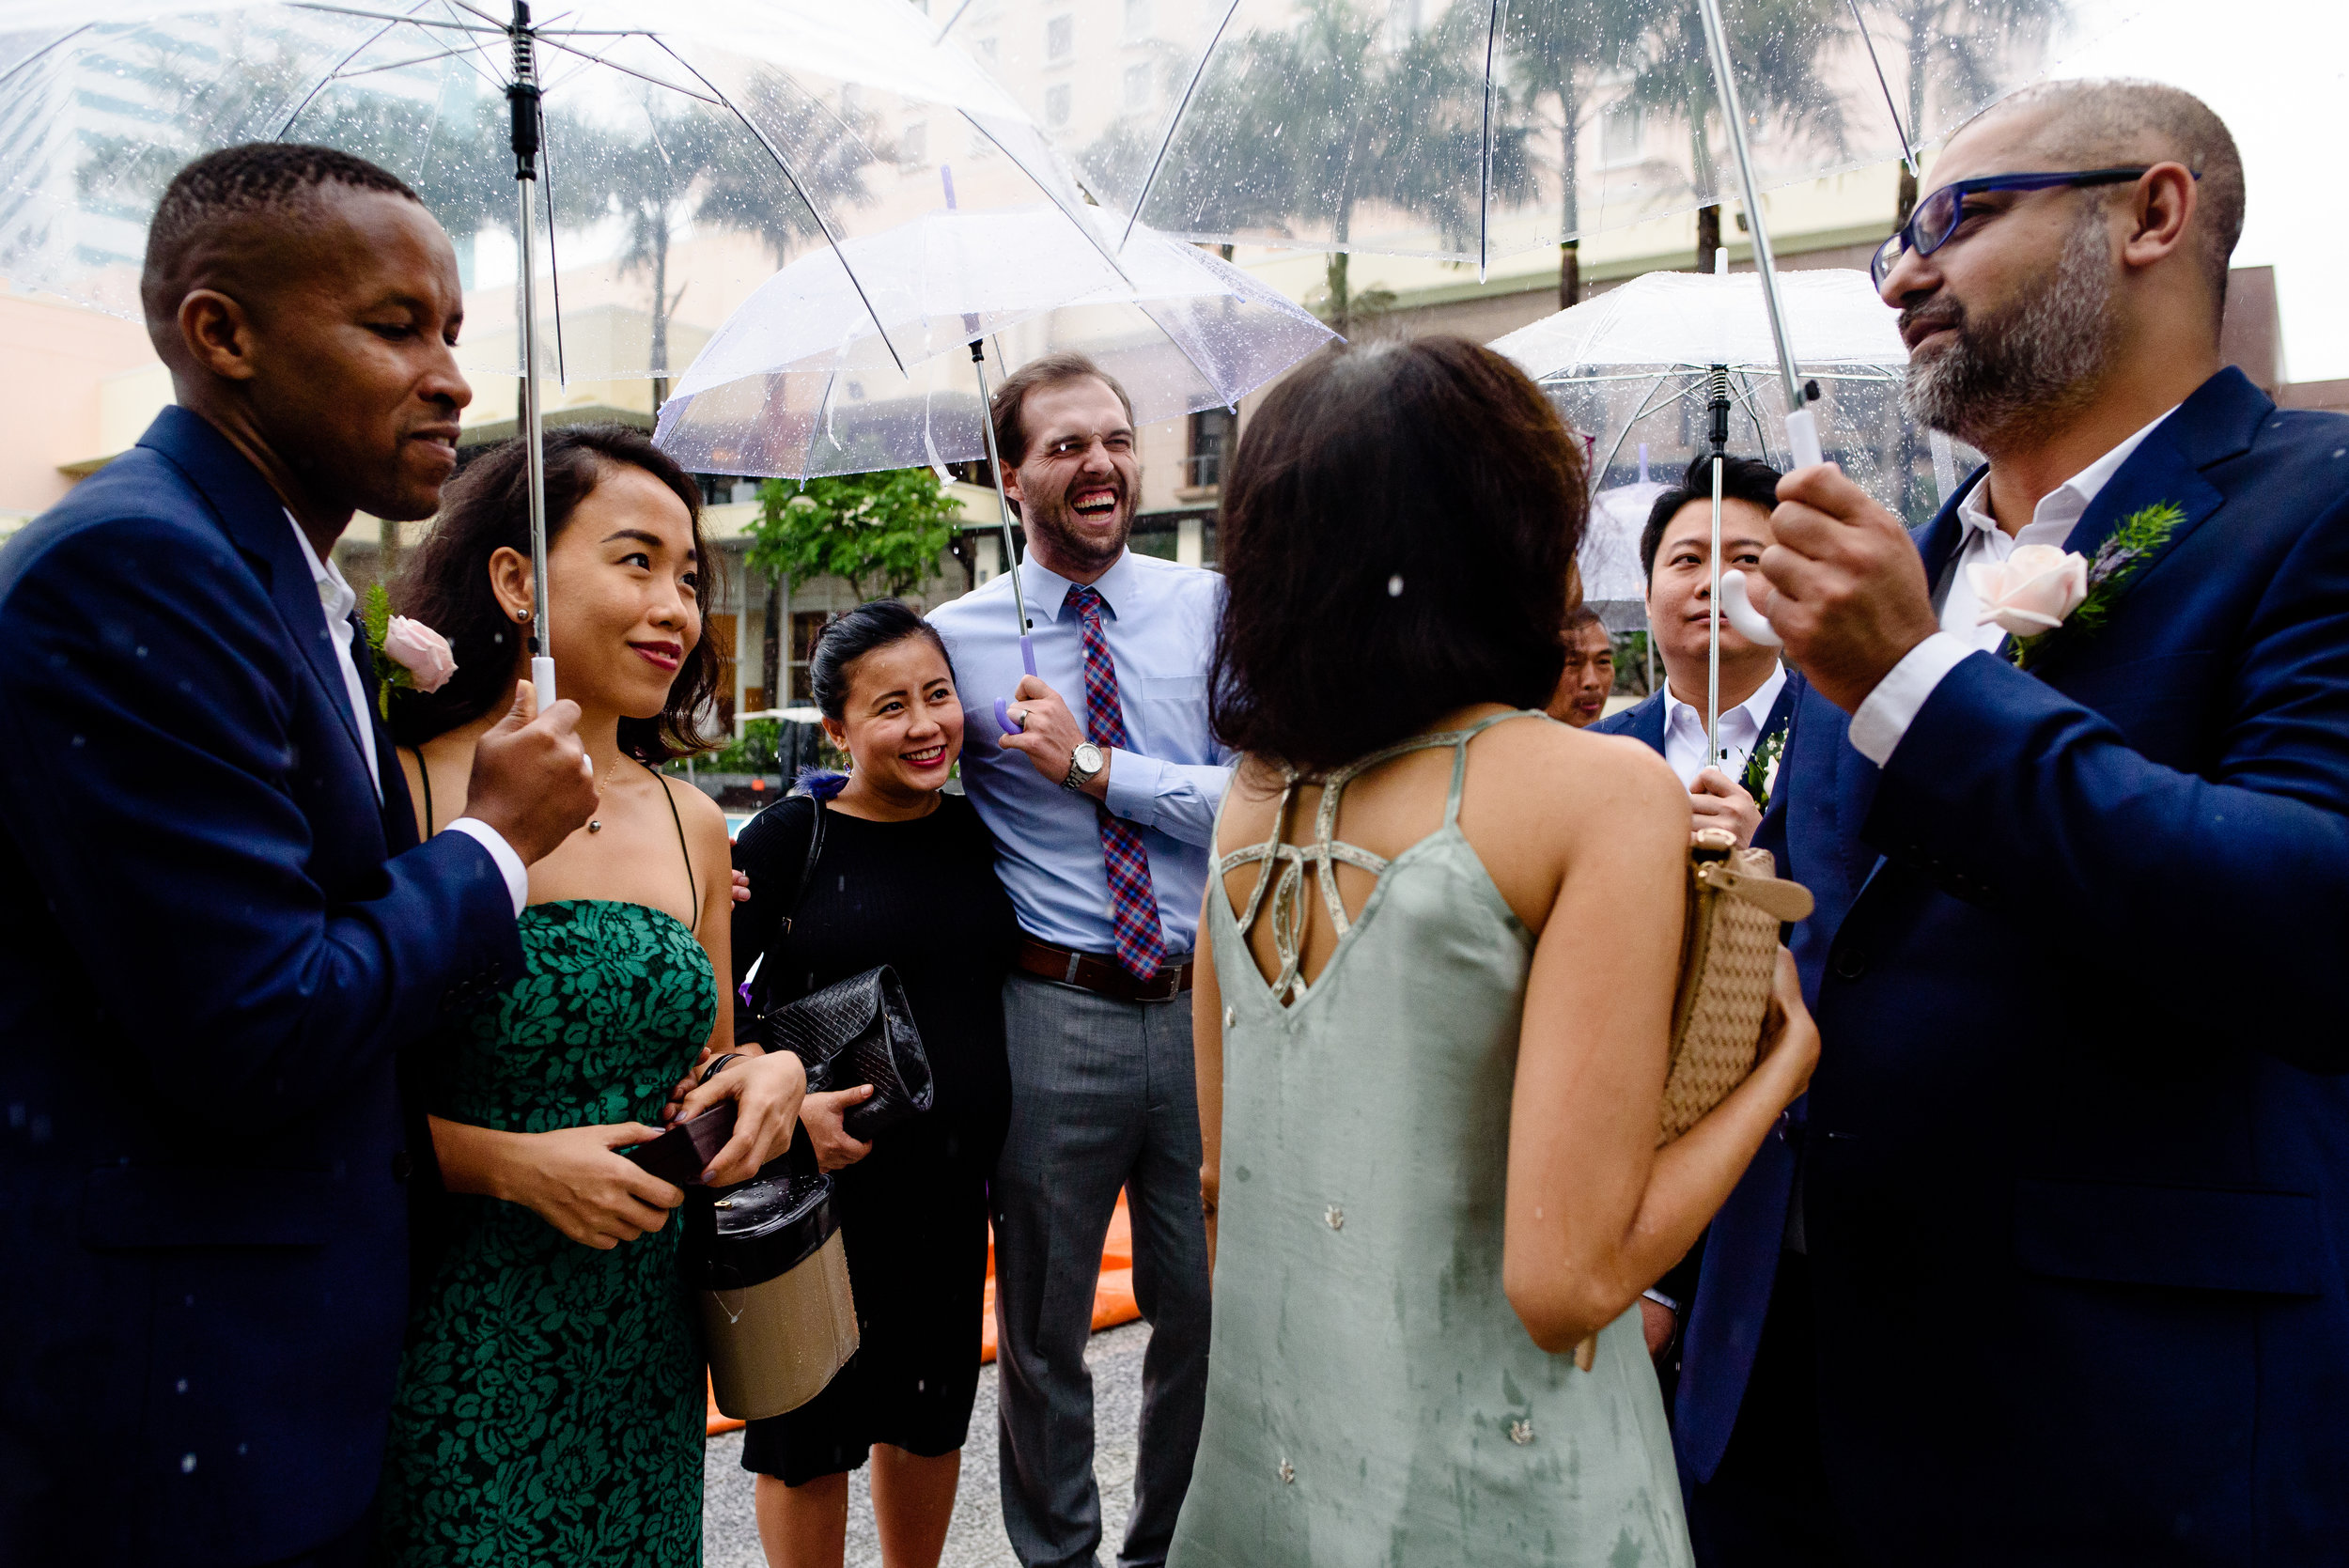 Jon-Hieu-wedding-legend-hotel-saigon-040.JPG